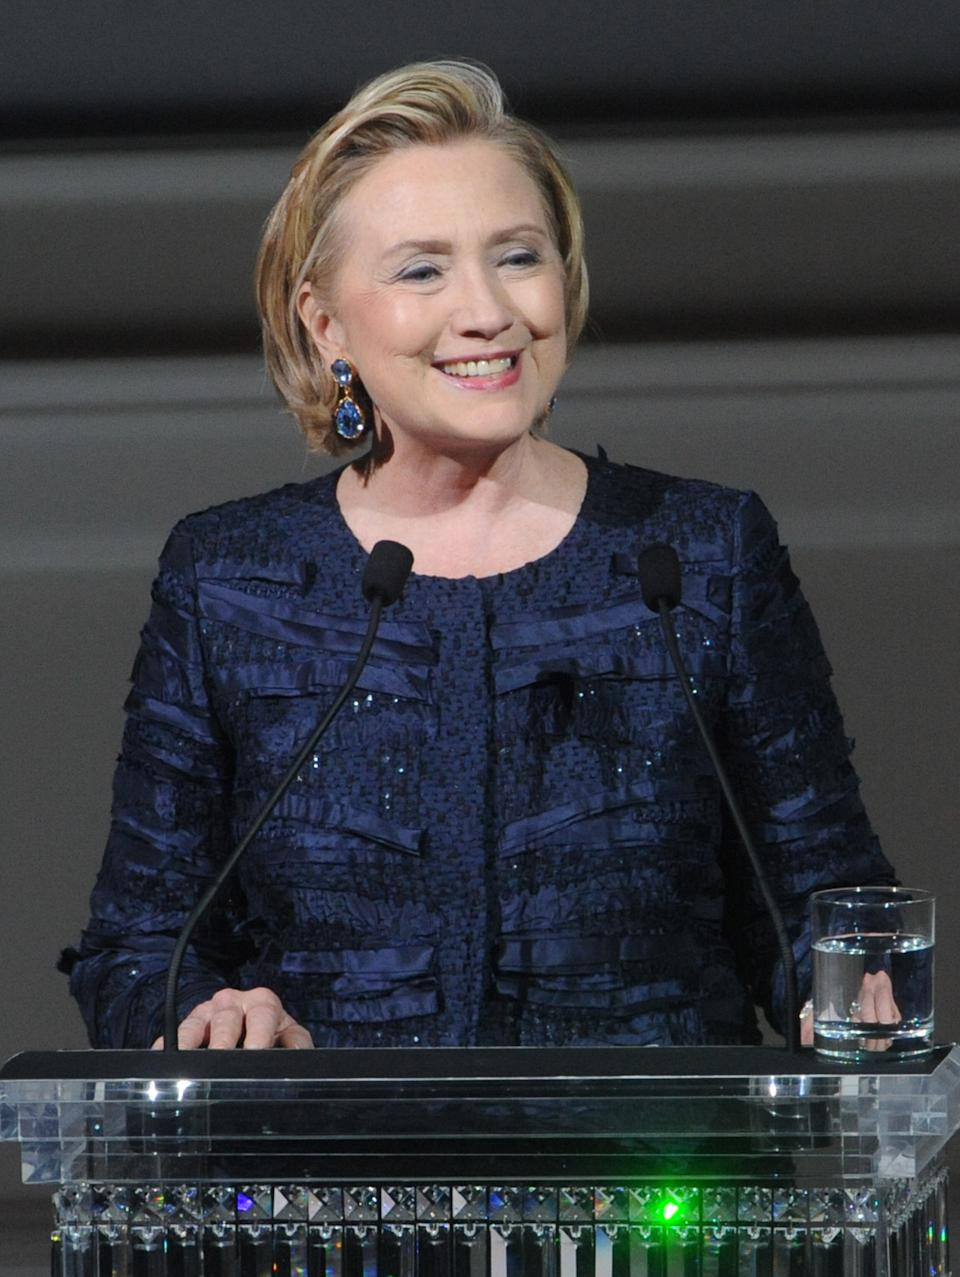 Former Secretary of State Hillary Rodham Clinton speaks on stage during the 2013 CFDA Fashion Awards at Alice Tully Hall on Monday, June 3, 2013 in New York. (Photo by Brad Barket/Invision/AP)